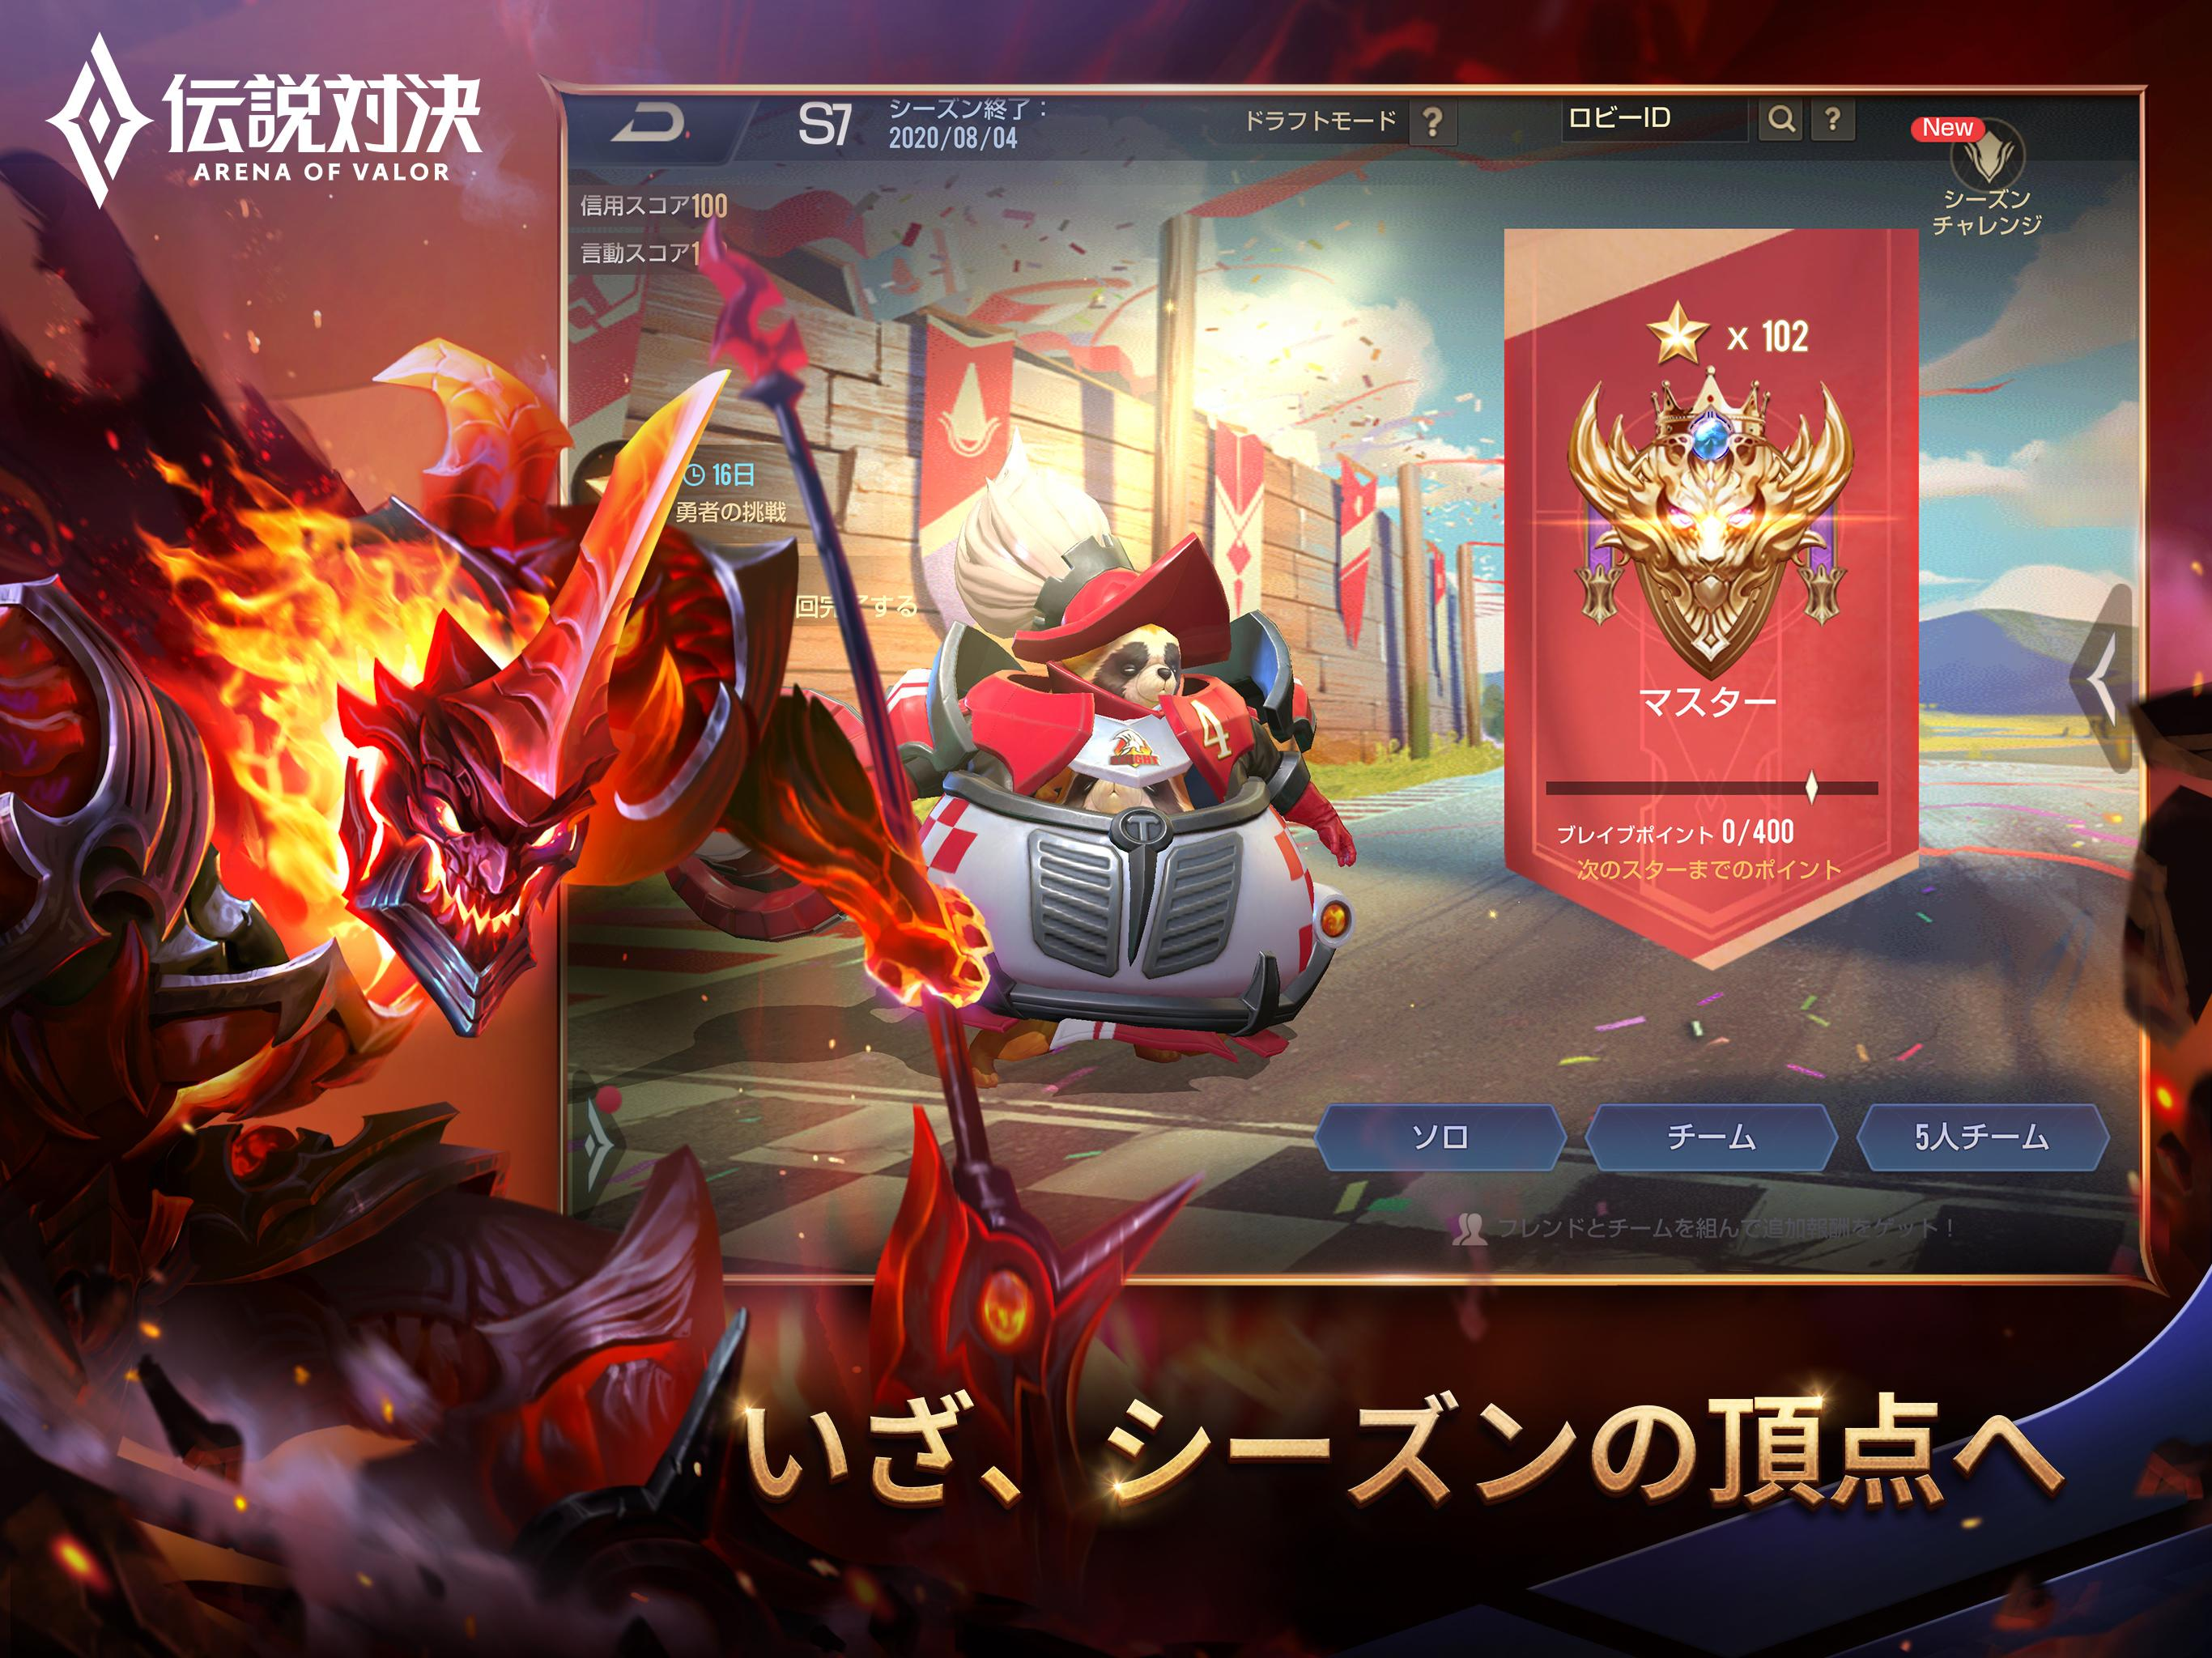 伝説対決 Arena of Valor 1.36.1.8 Screenshot 16